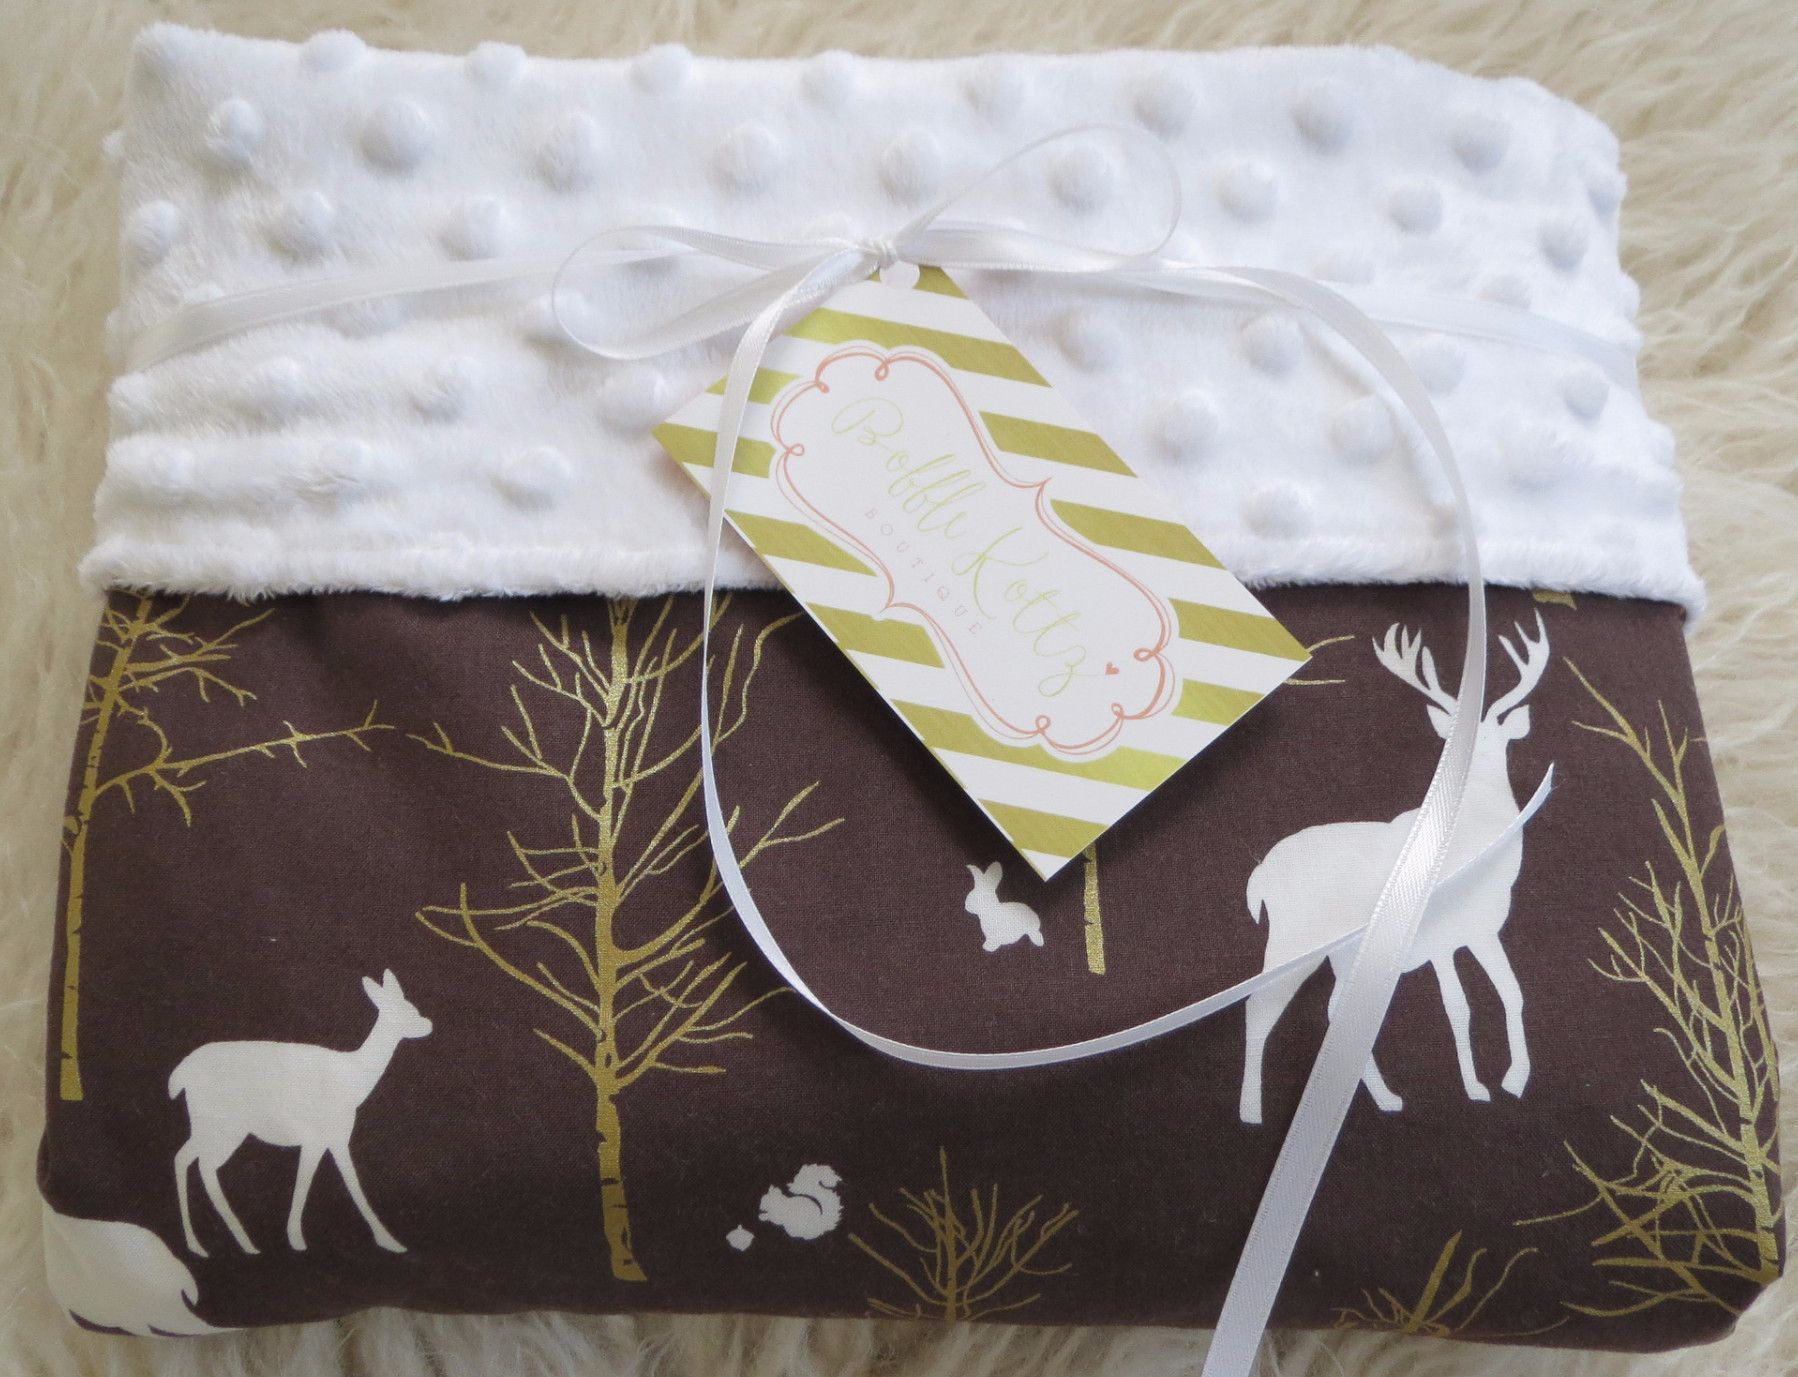 Baby Boy Is Sure To Snuggle With This Minky Baby Blanket For Years To Come